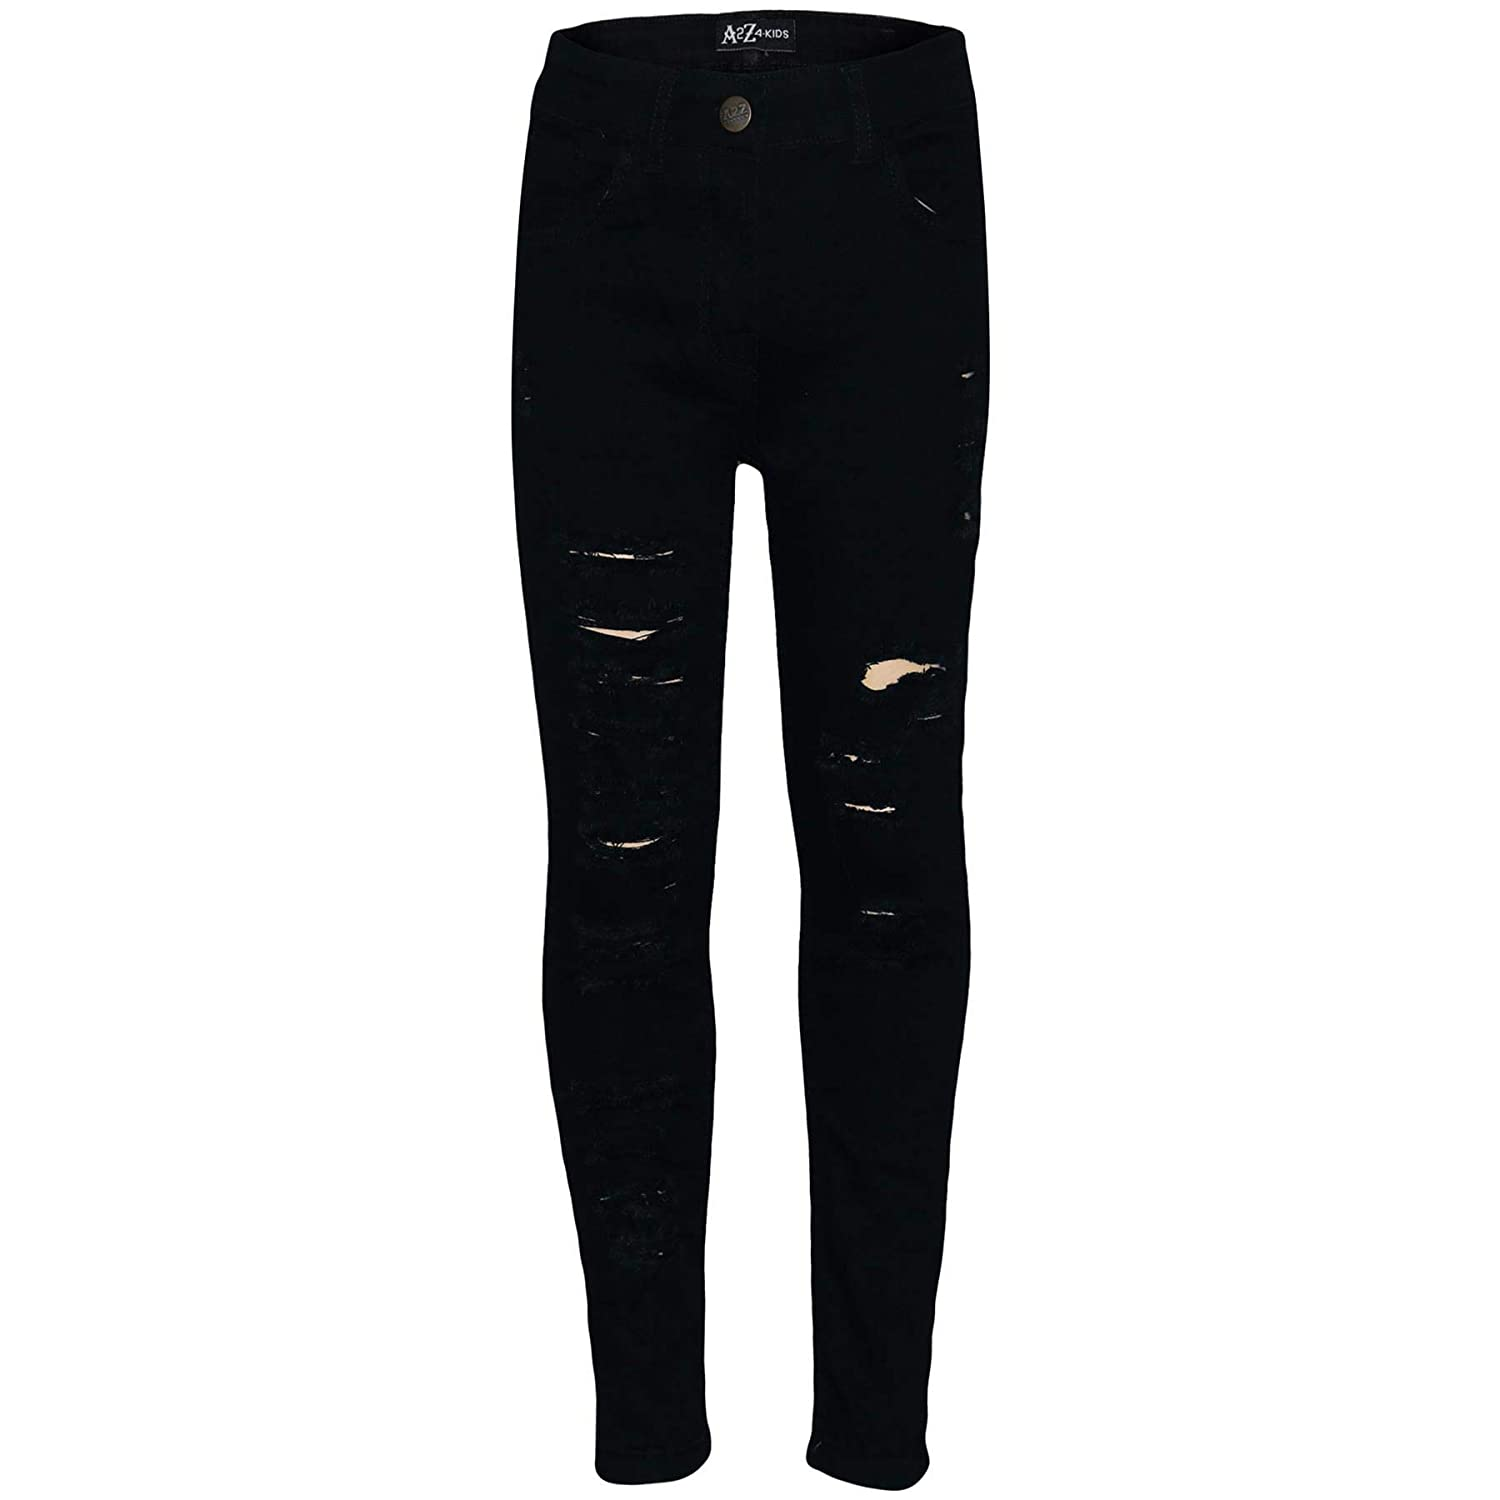 A2Z 4 Kids Kids Girls Stretchy Black Denim Jeans Designers Ripped Faded Fashion Jeggings Skinny Frayed Pants Stylish Trousers New Age 5 6 7 8 9 10 11 12 13 Years